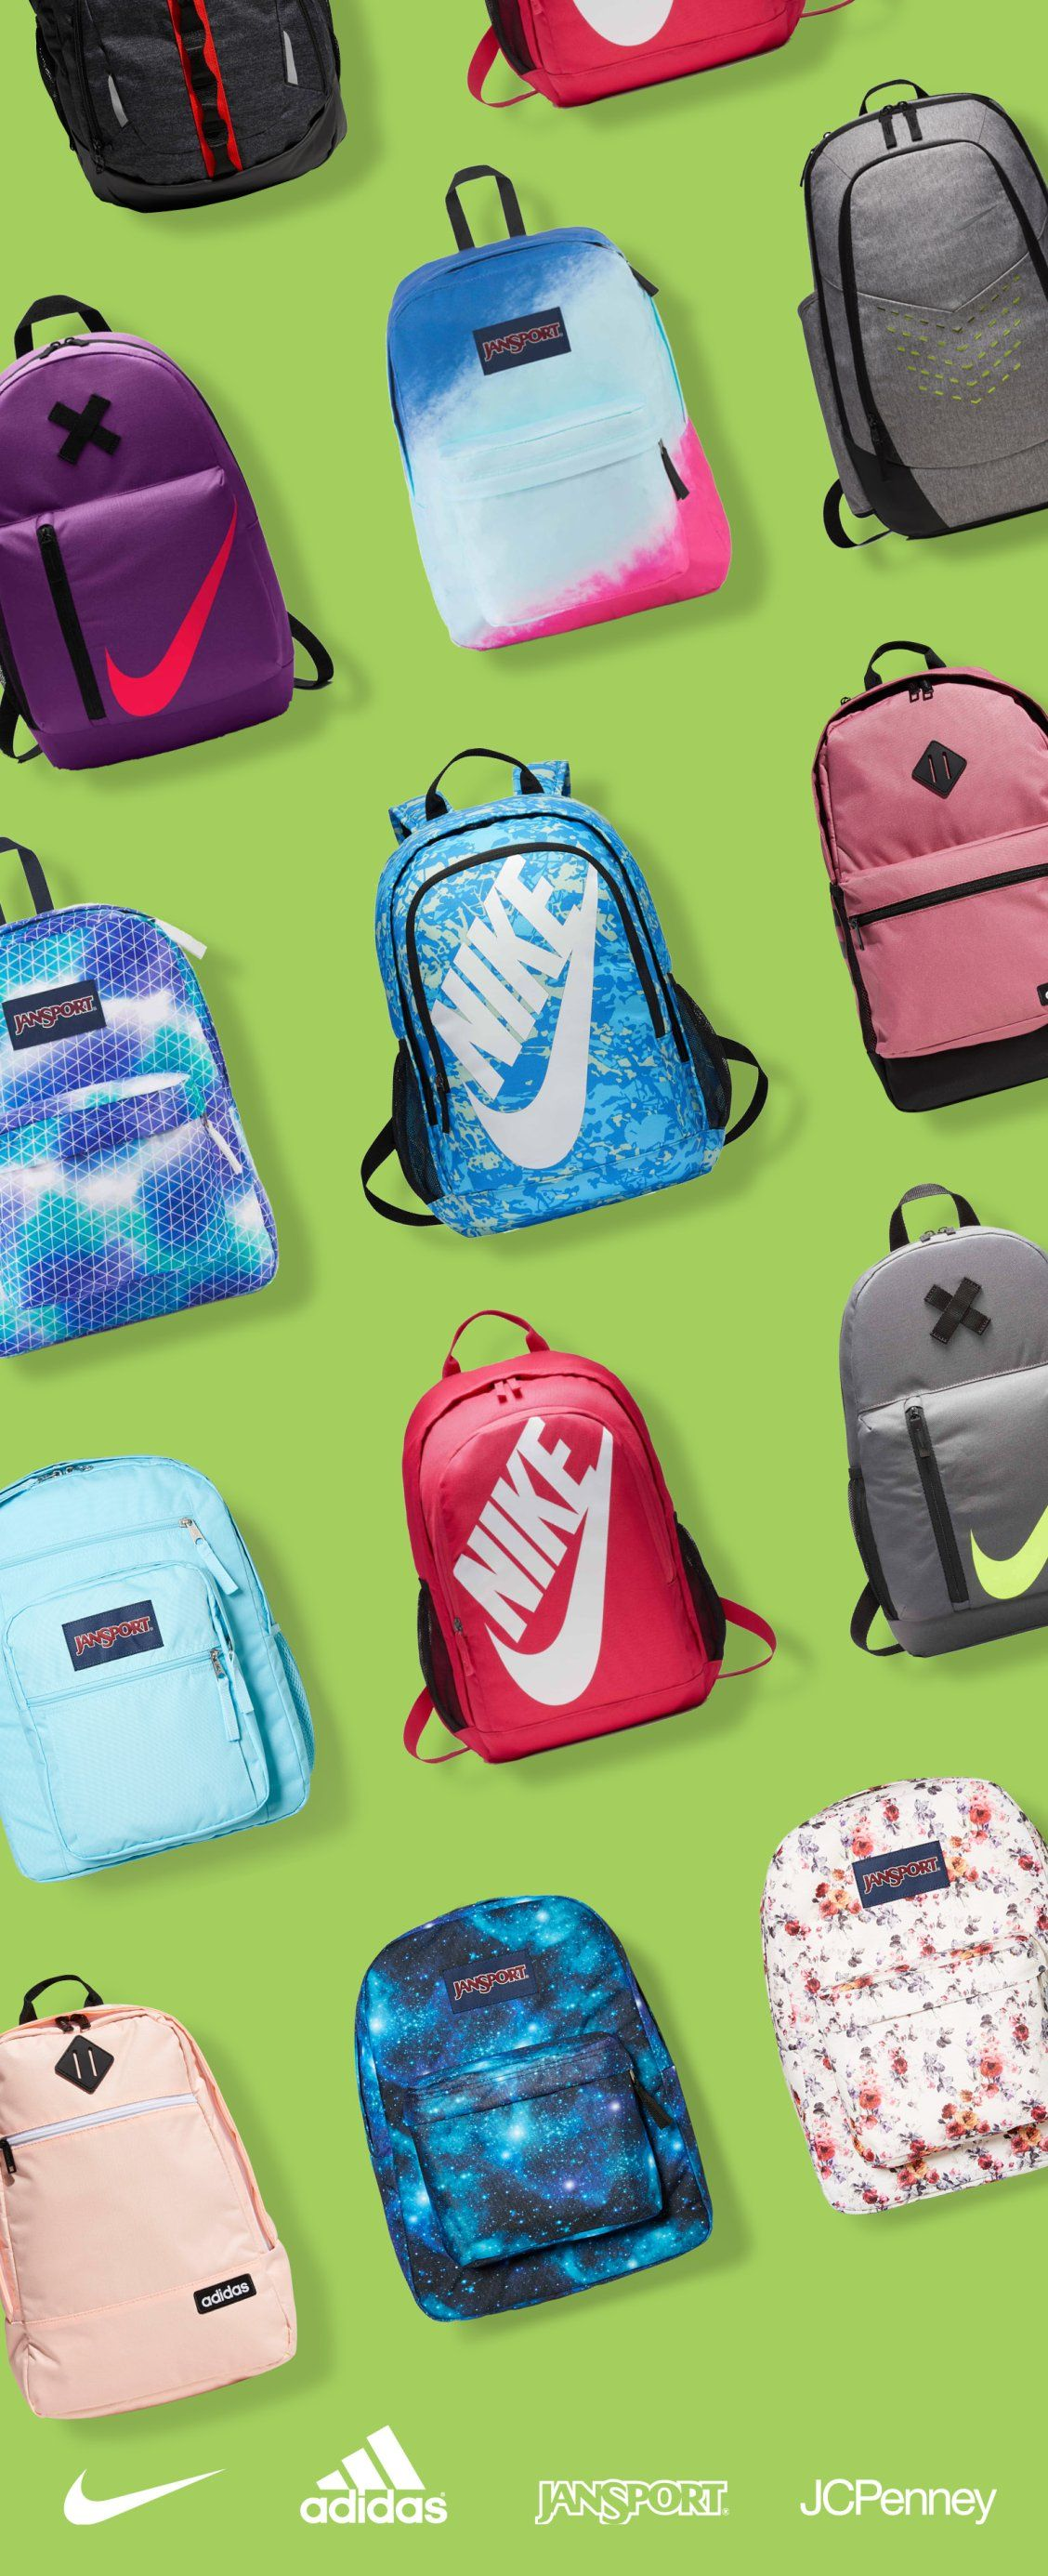 Send them back to school with a backpack from JCPenney! Find popular brands  like Nike, adidas, and JanSport. Shop JCPenney in store or online for a  backpack ... 0d8efdfab4